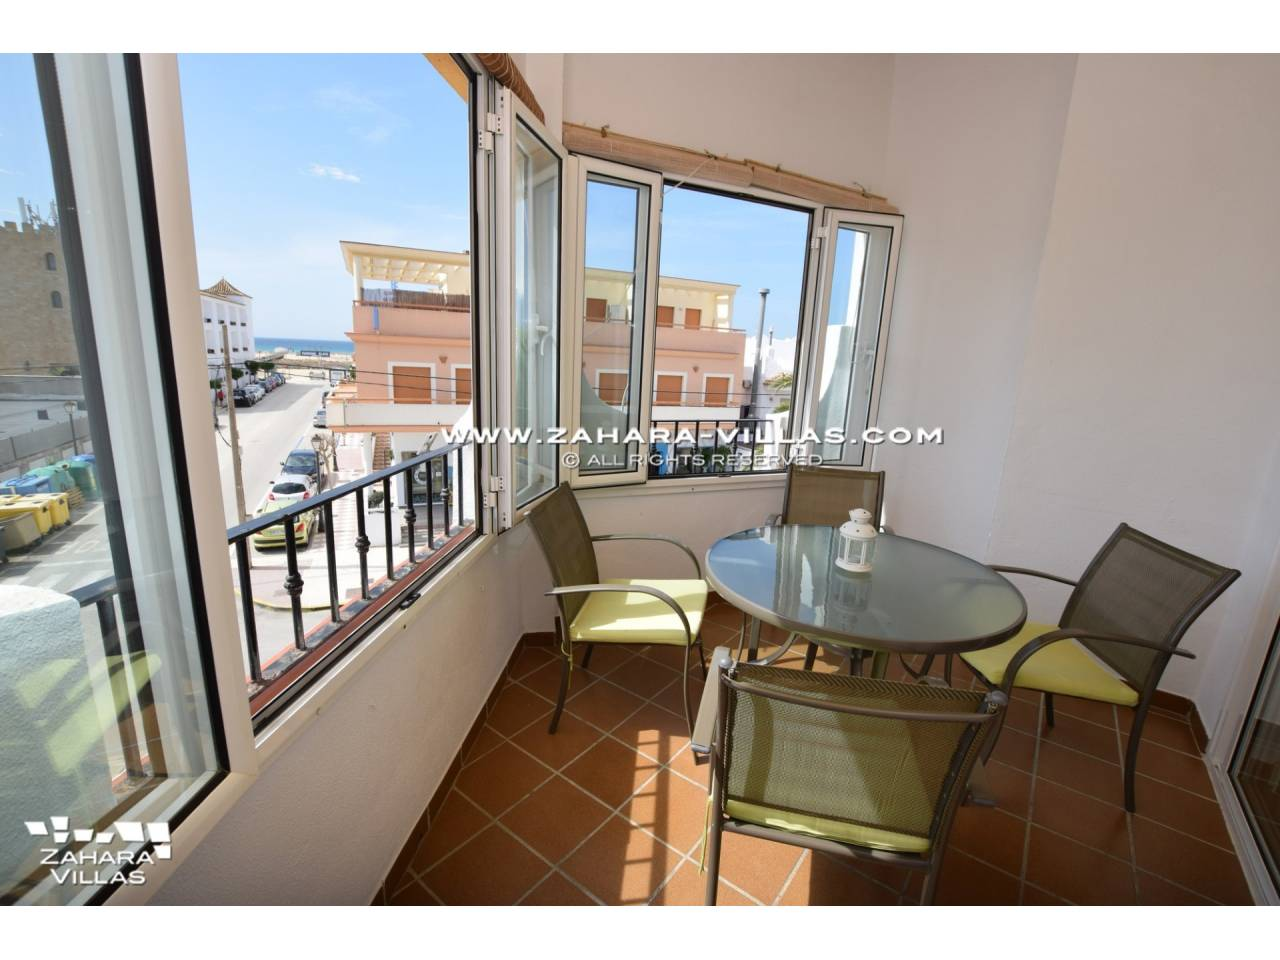 Imagen 1 de Amazing Apartment for sale in Zahara de los Atunes